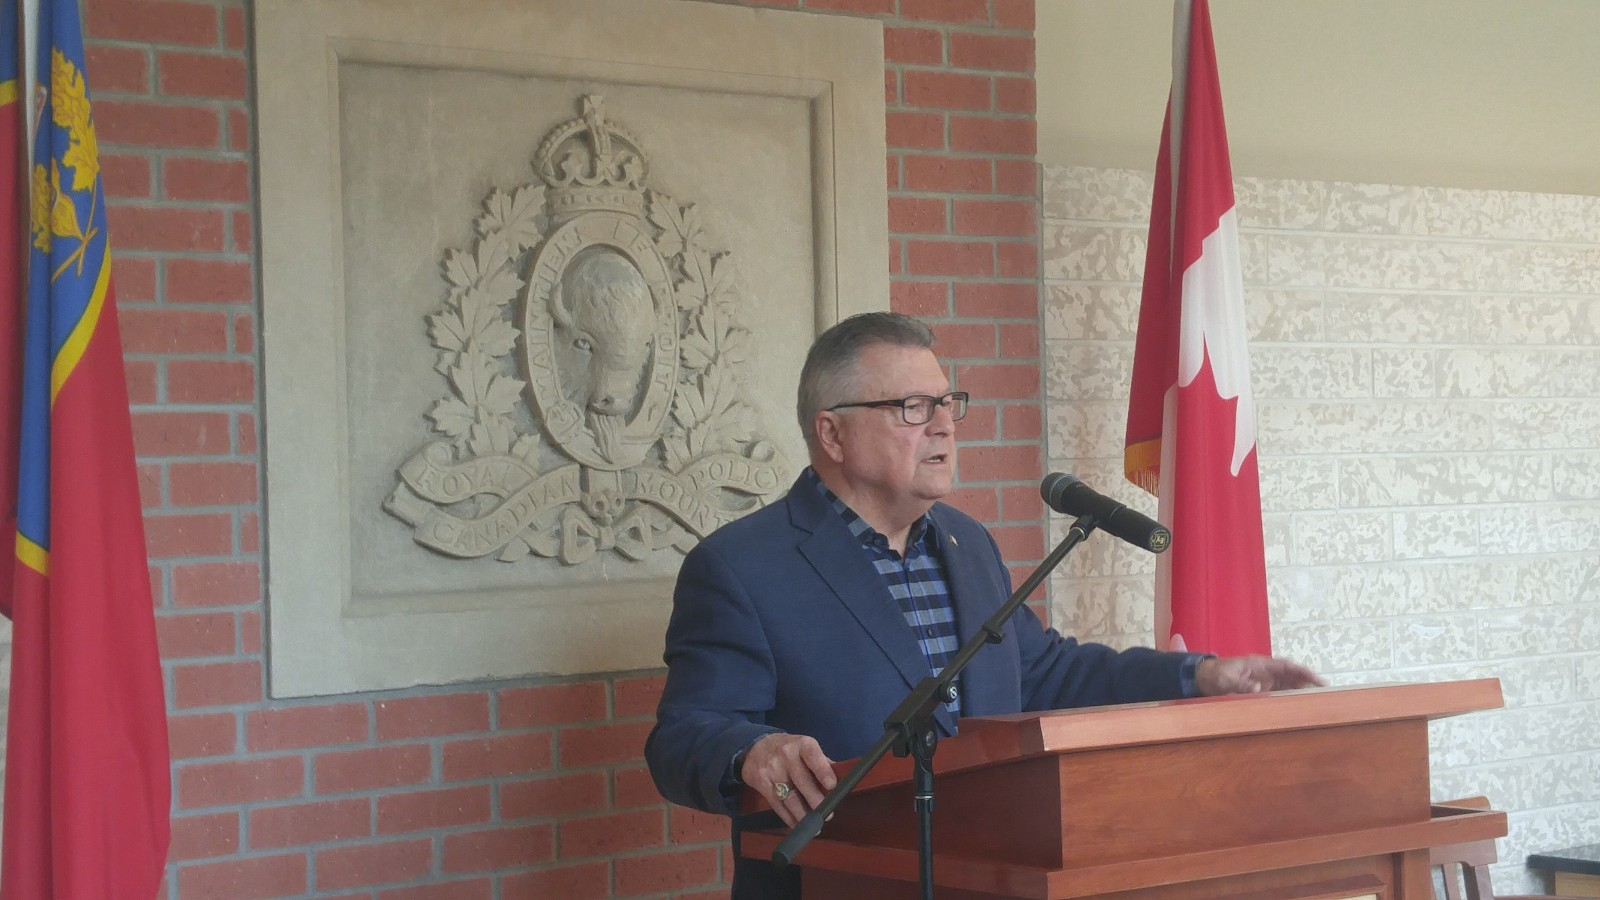 Federal Minister of Public Safety and Emergency Preparedness Ralph Goodale speaks in Regina about the Fort McMurray wild fires. Photo by Britton Gray